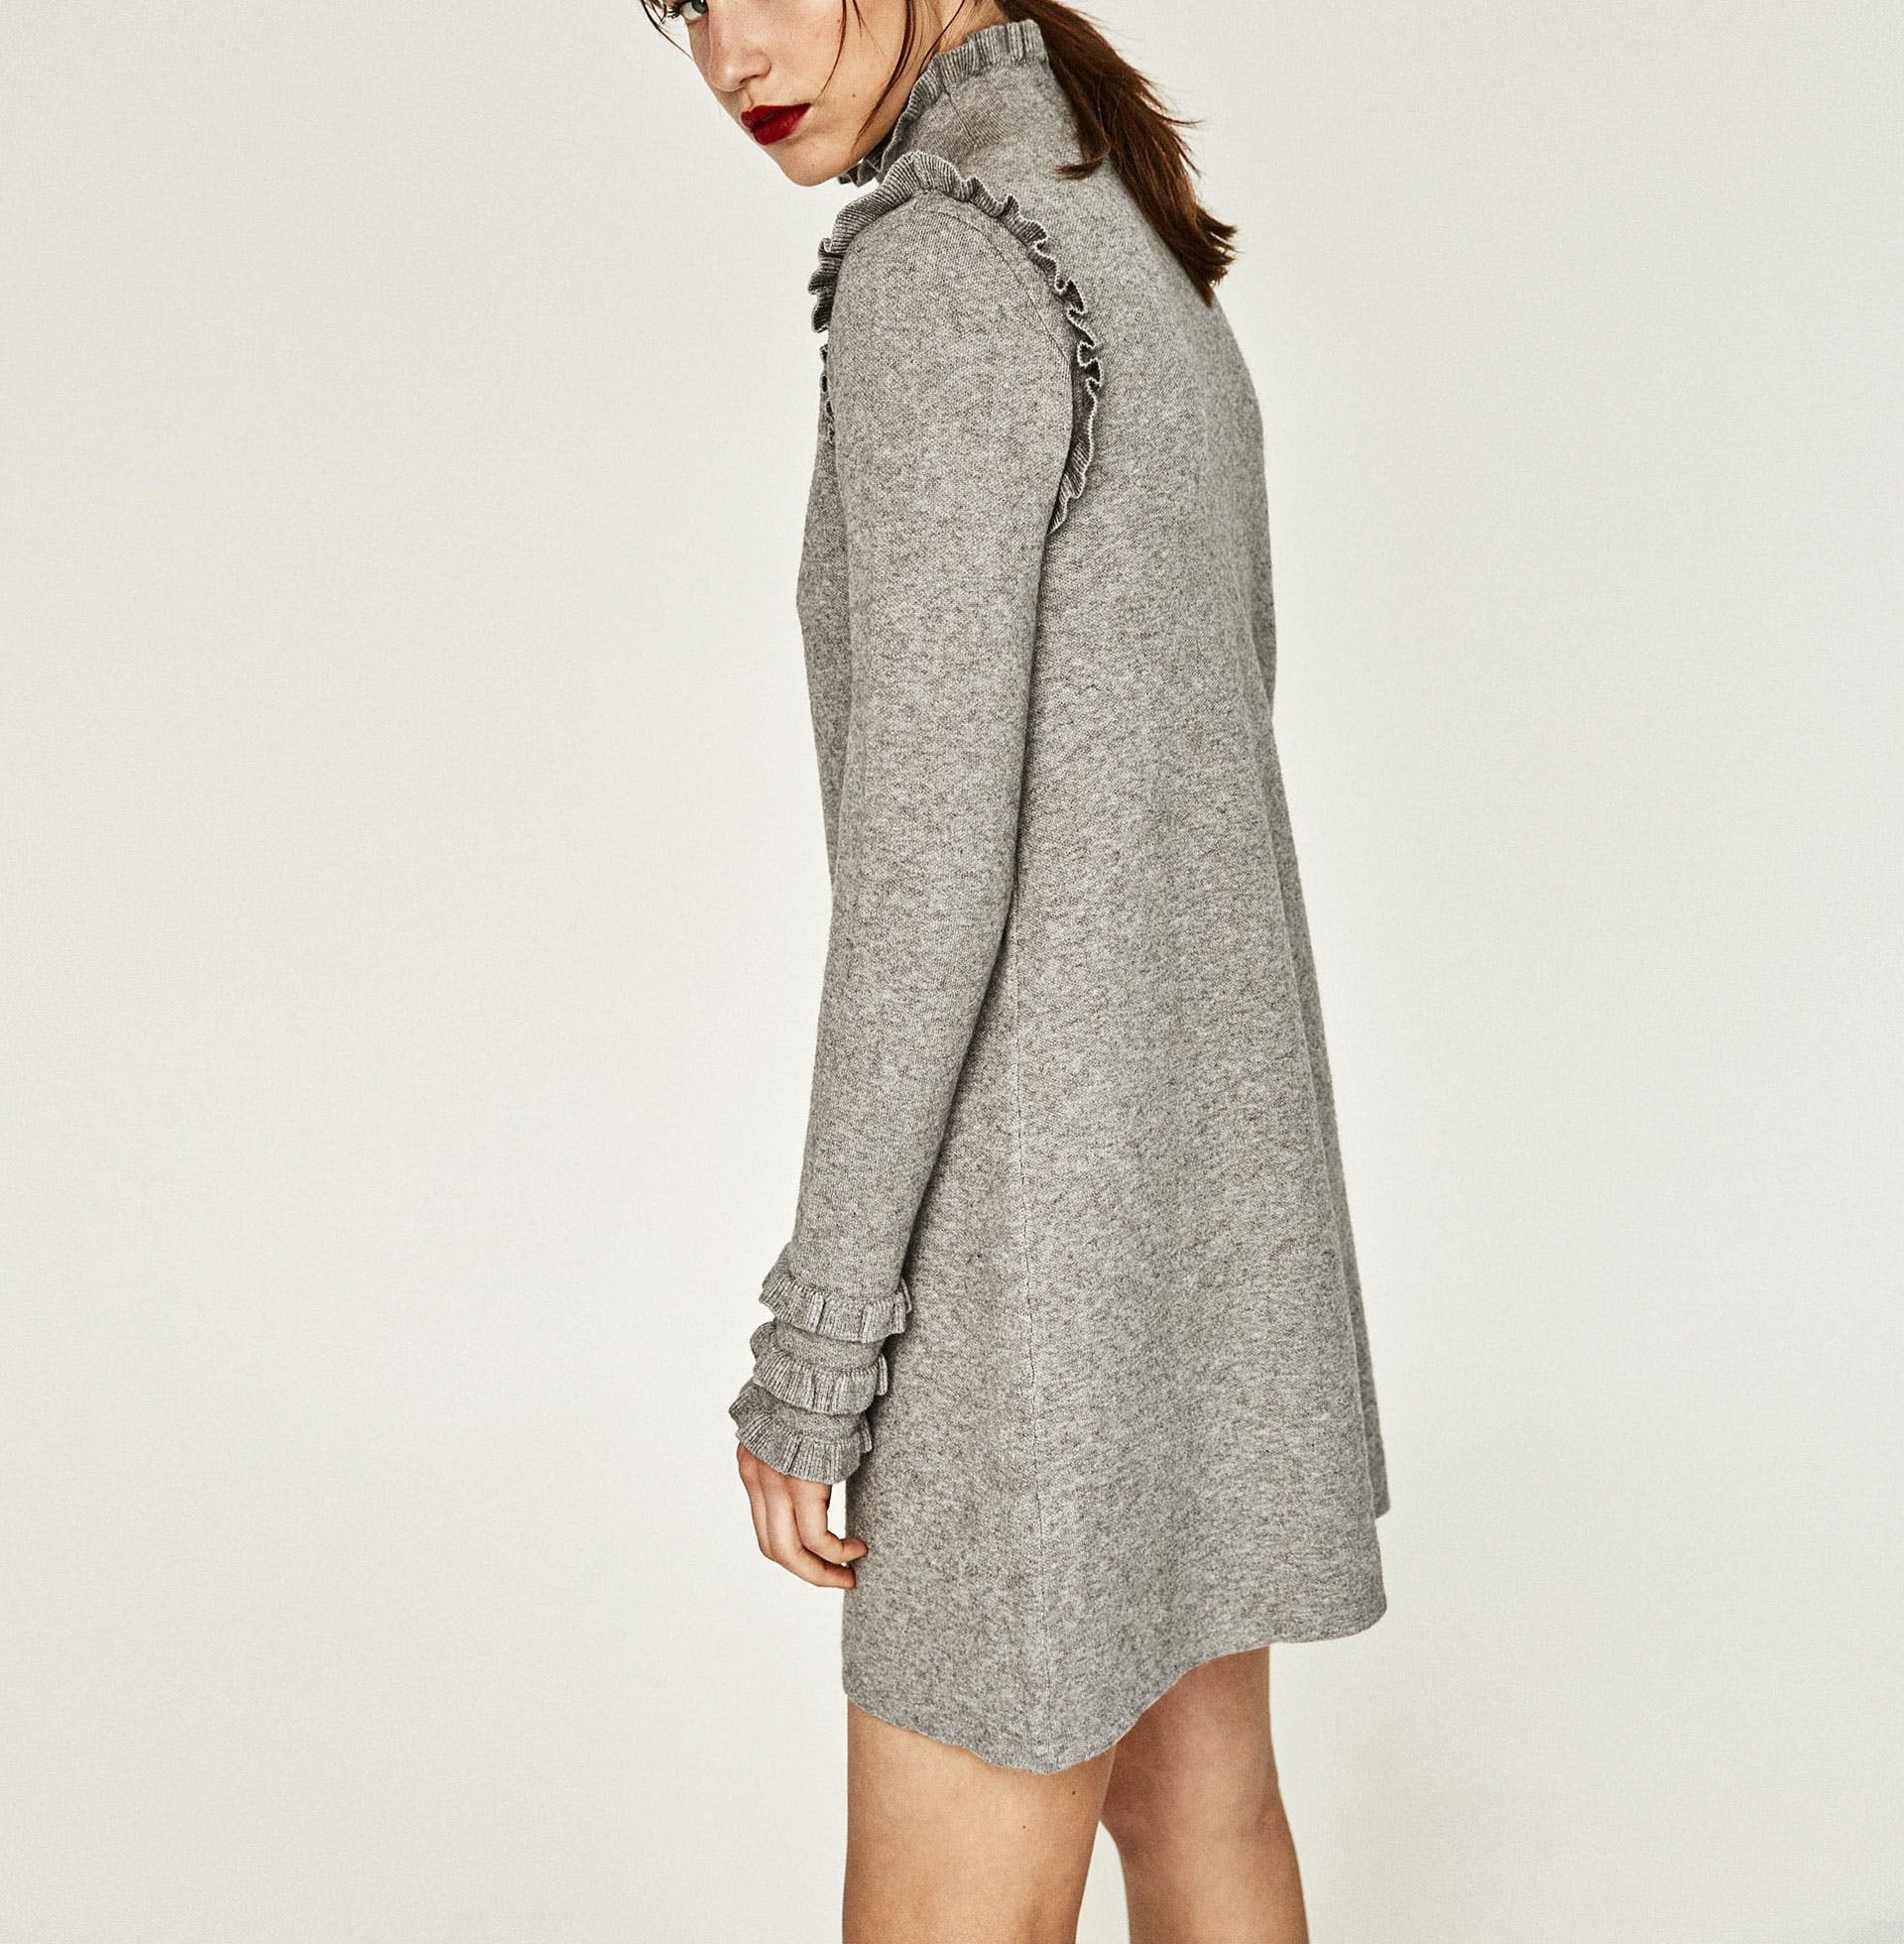 dallas zara what to buy 1 sweater dress